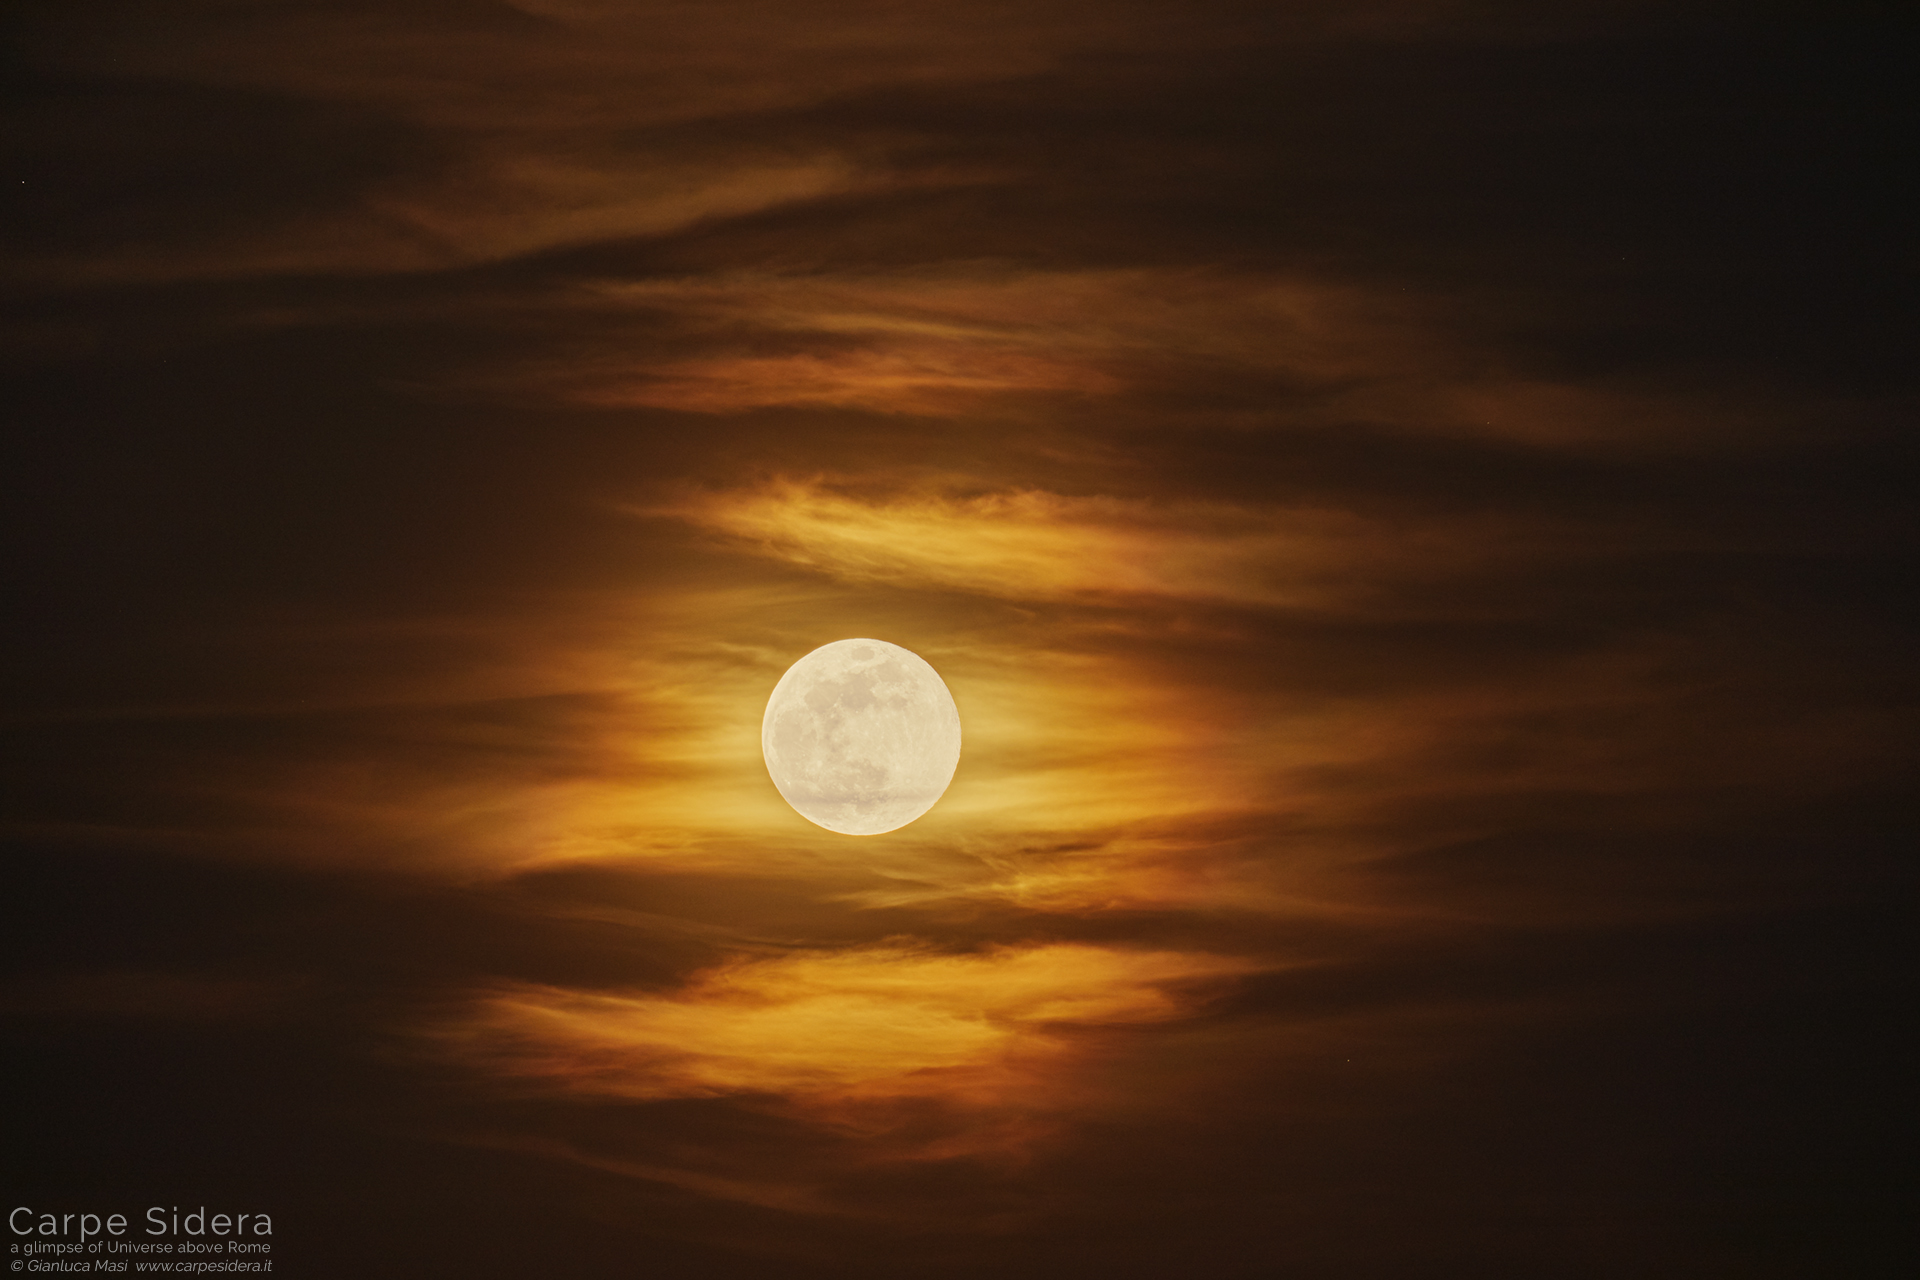 The 19 Apr. 2019 full Moon shines across the clouds.